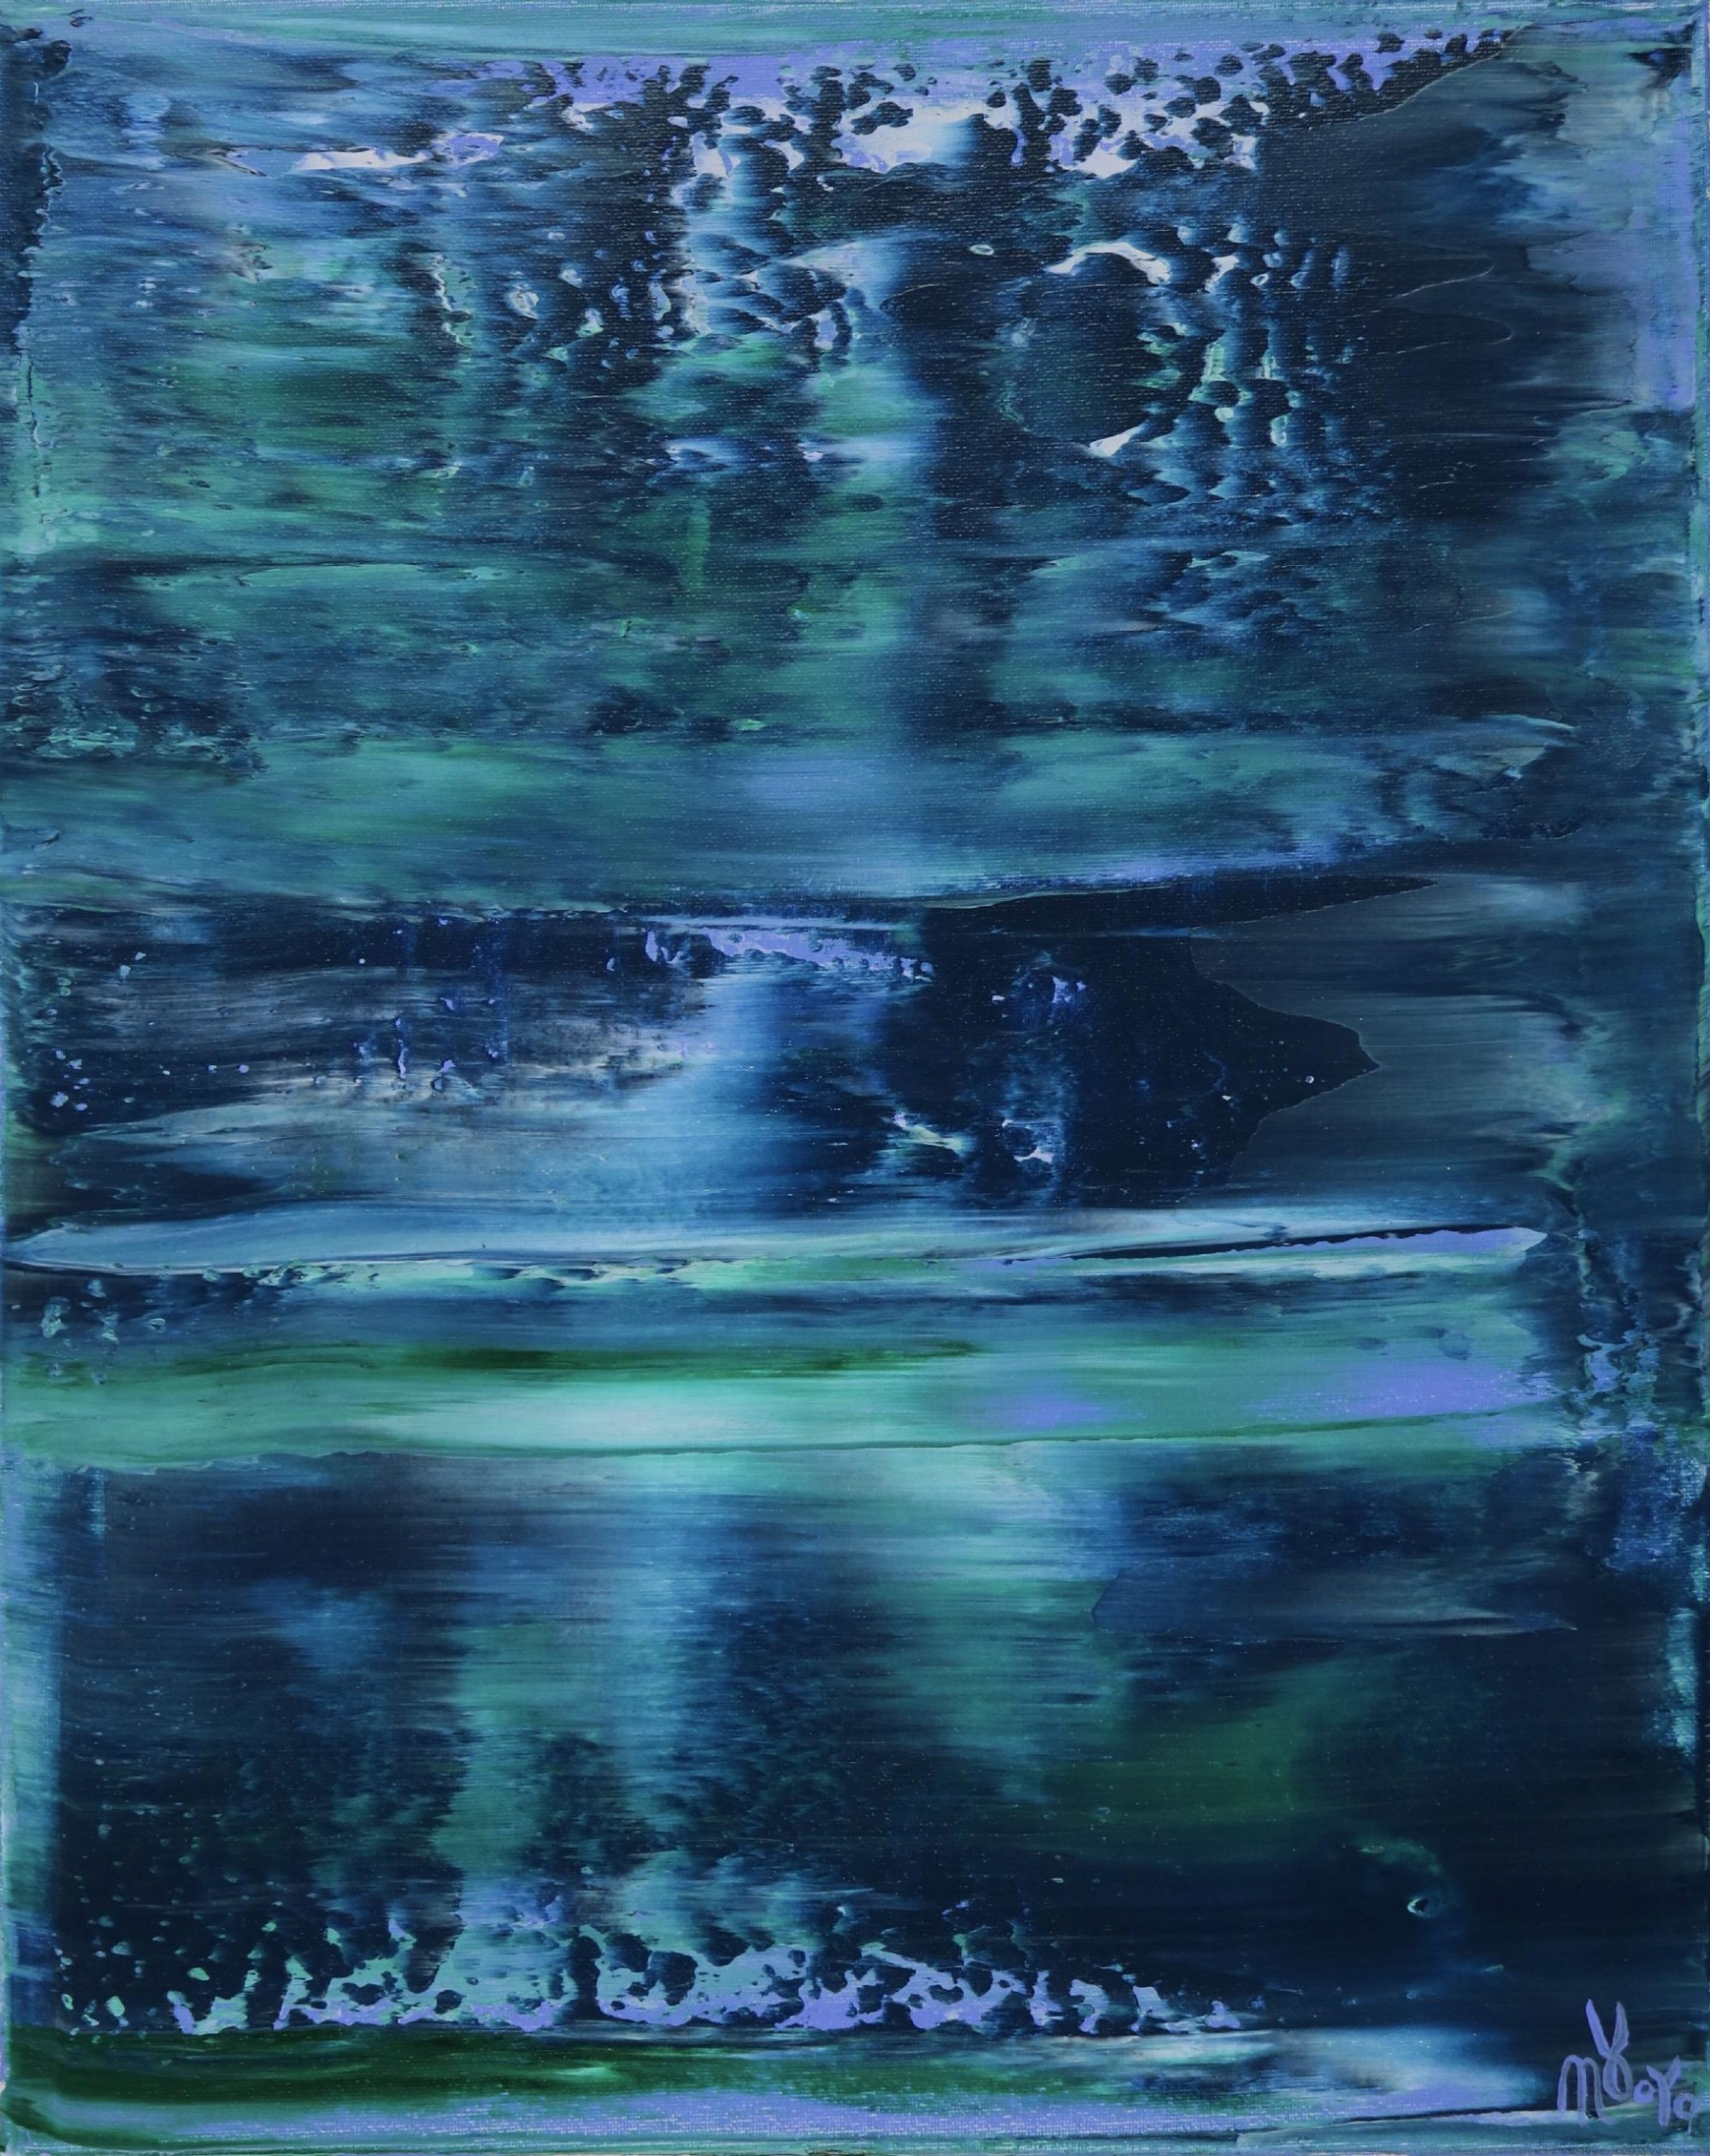 SOLD - Canvas 3 - Stormy Azure Night - Triptych (2020) by Nestor Toro in Los Angeles